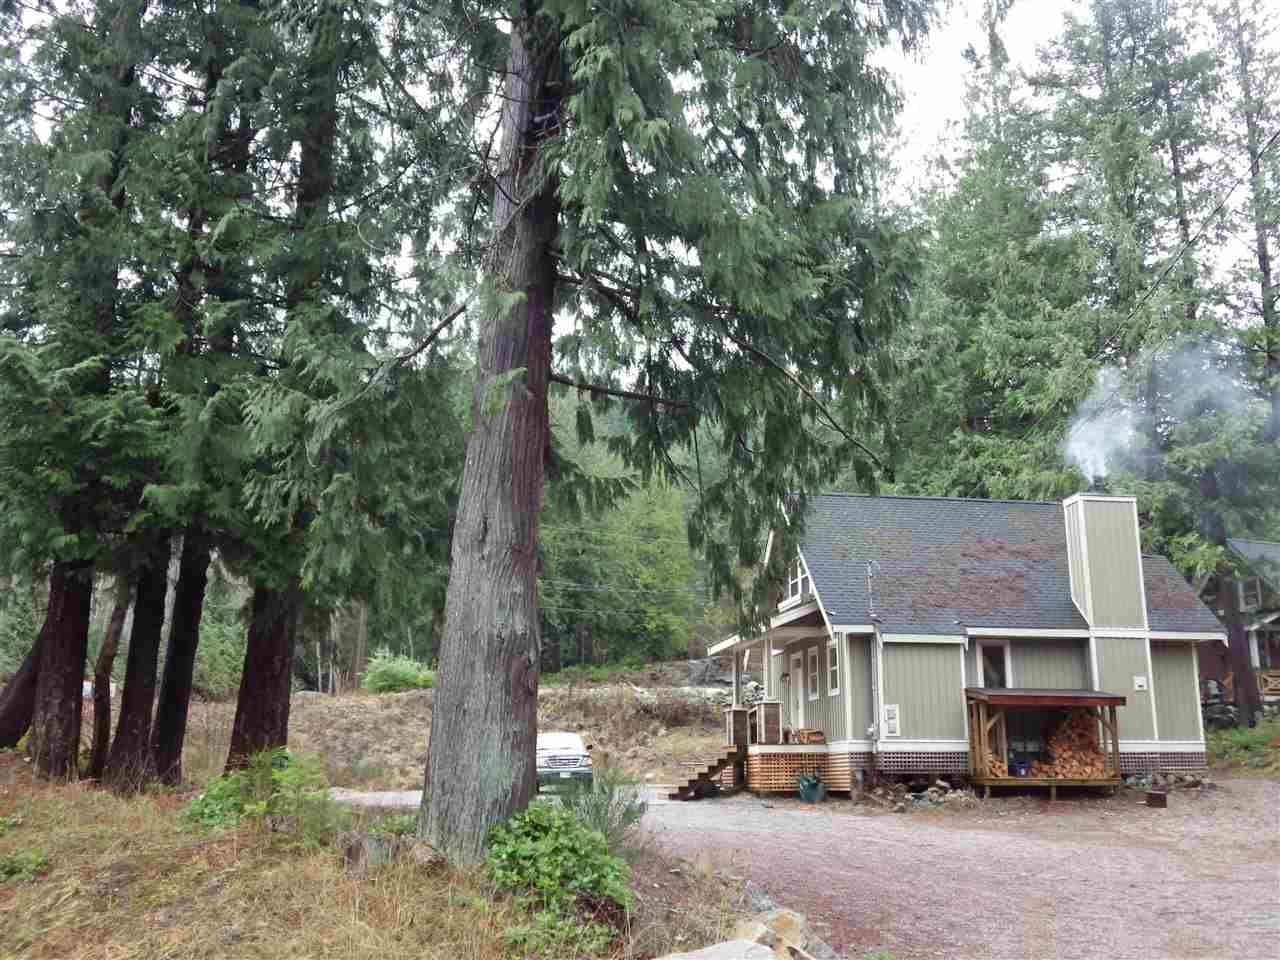 Main Photo: 13514 LEE Road in Pender Harbour: Pender Harbour Egmont House for sale (Sunshine Coast)  : MLS®# R2233100